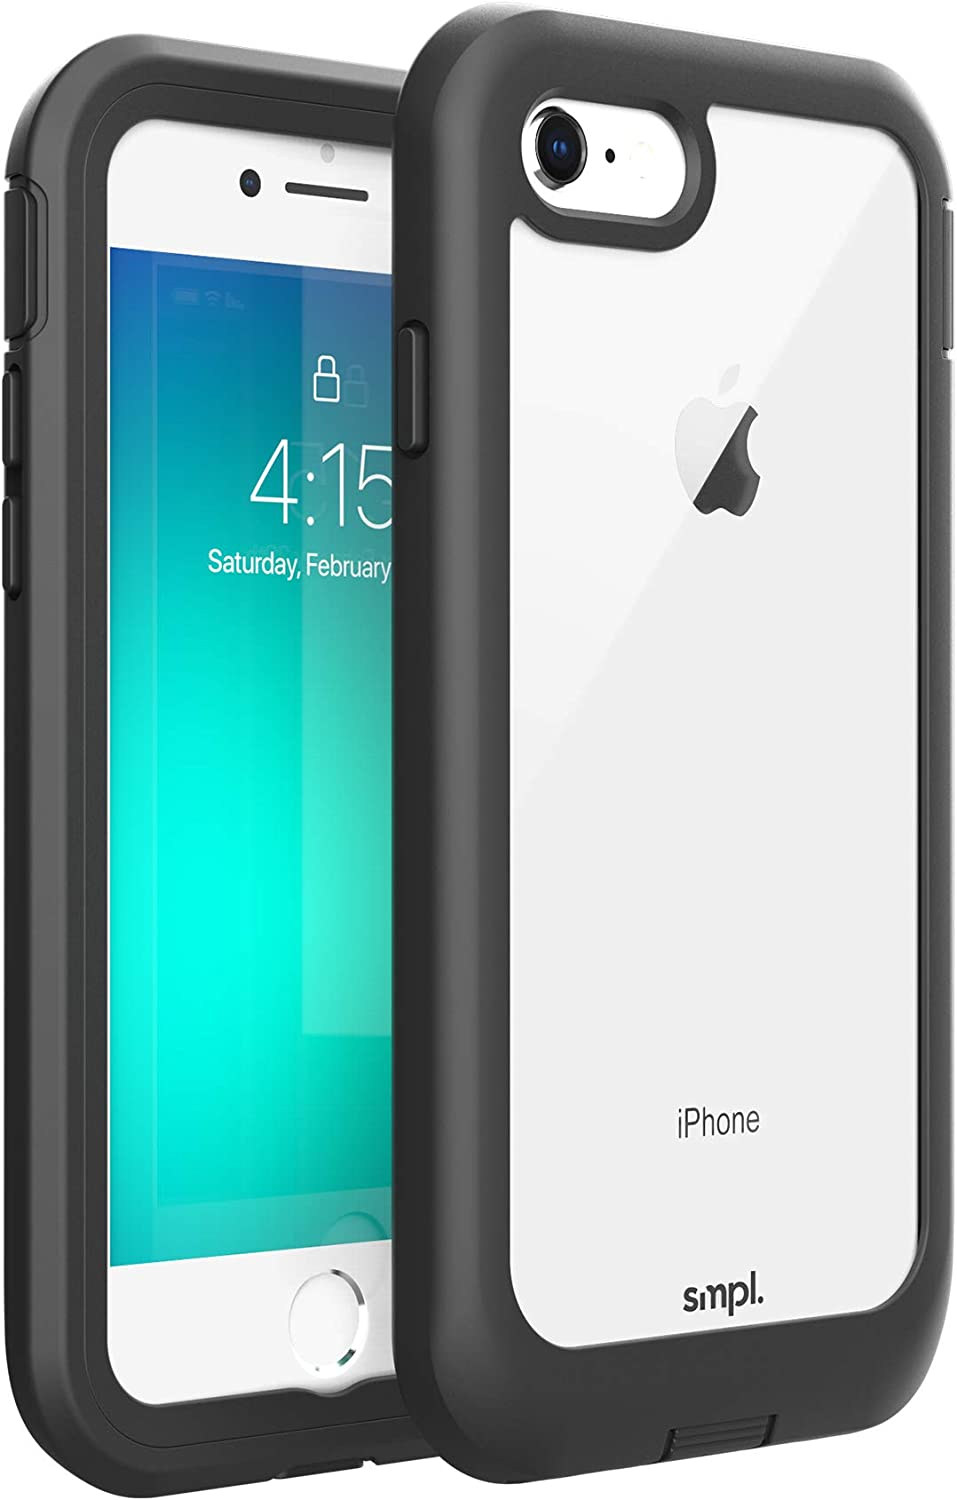 SMPL iPhone 7/8/SE Drop Proof, Lightweight, Protective Wireless Charging Compatible iPhone Case - Black